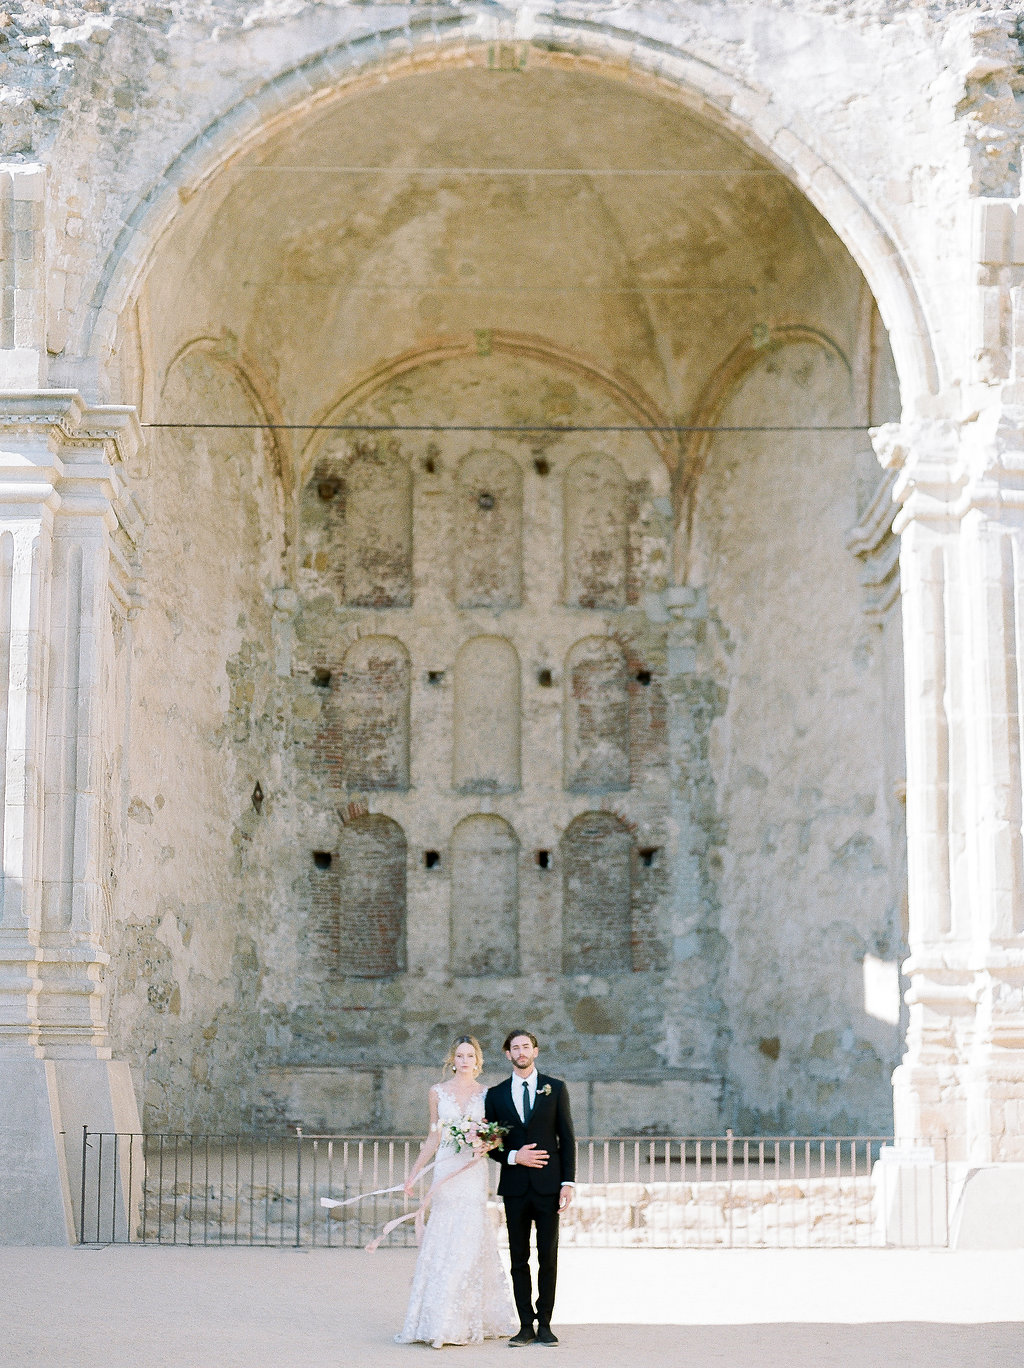 Spanish Mission Style Wedding Ideas Summer Flowers Finding Flora San Juan Capistrano European Venues California Bride and Groom